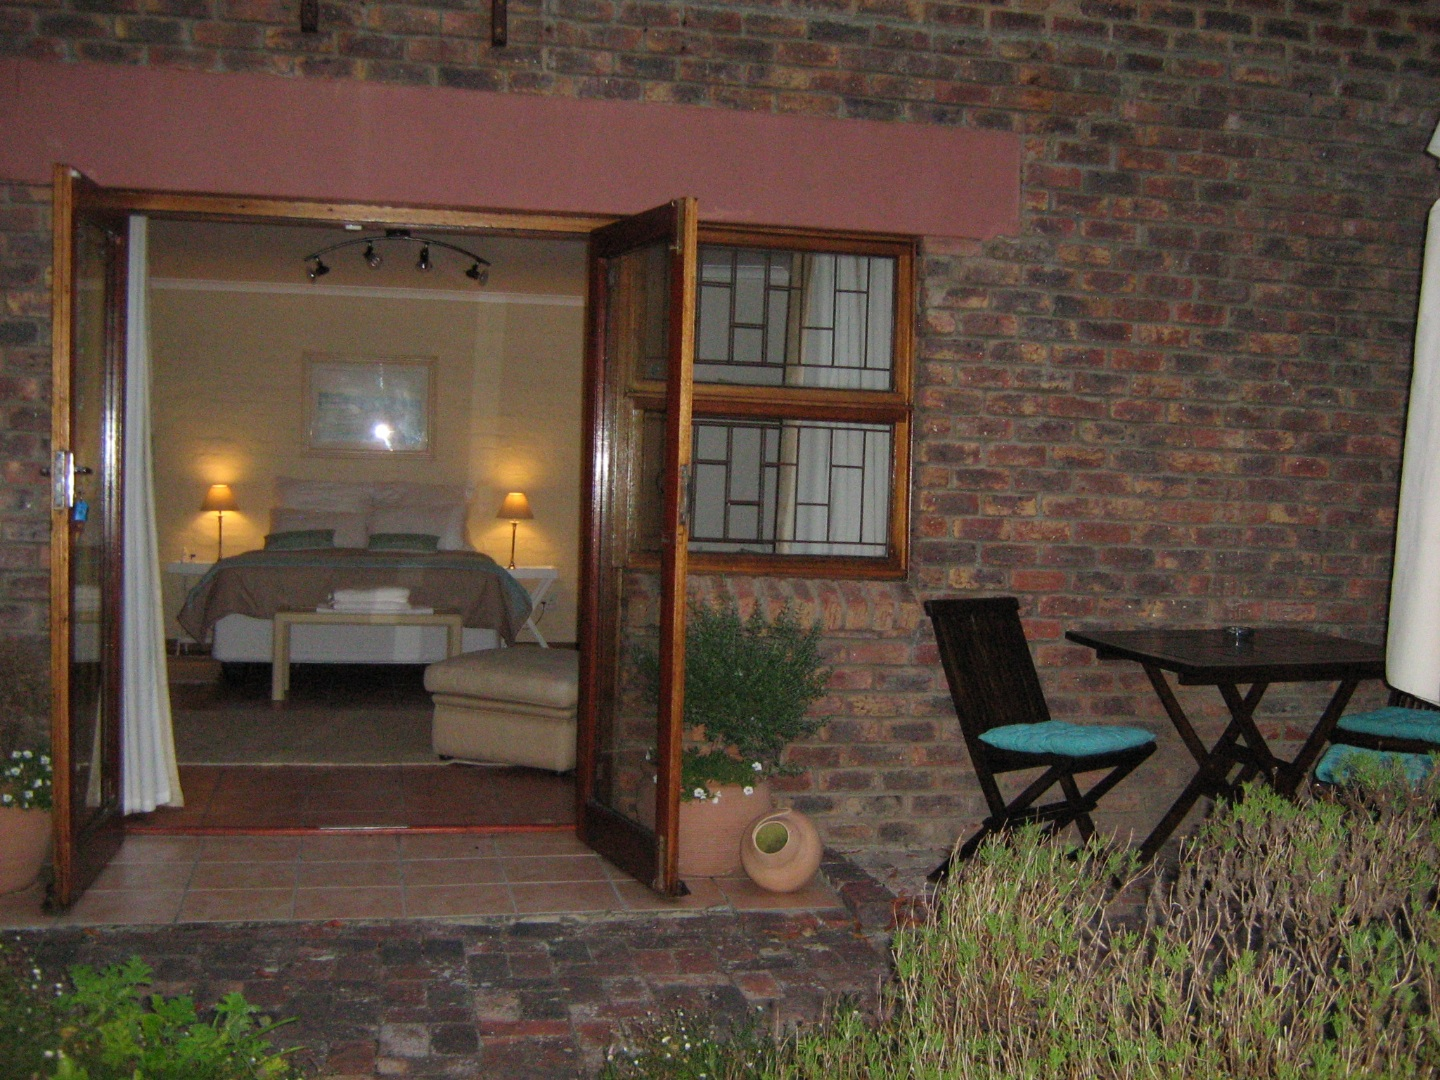 4 Bedroom House For Sale in Hunters Home